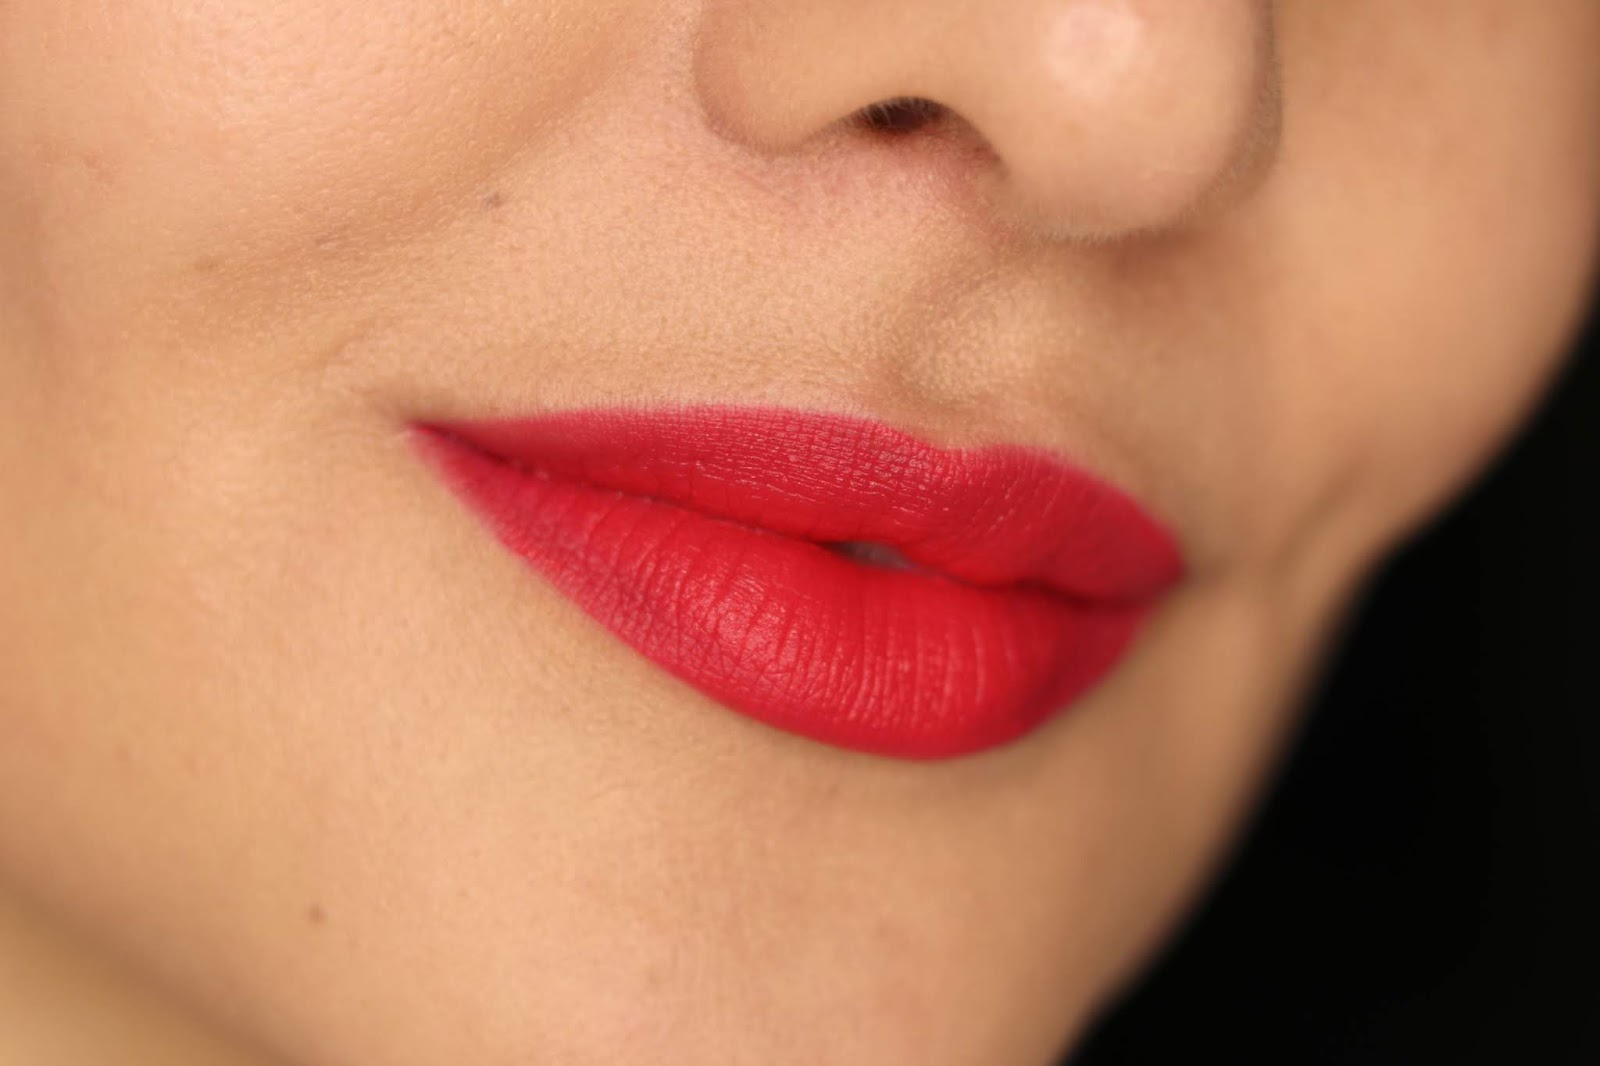 loreal les macarons liquid lipstick swatches review